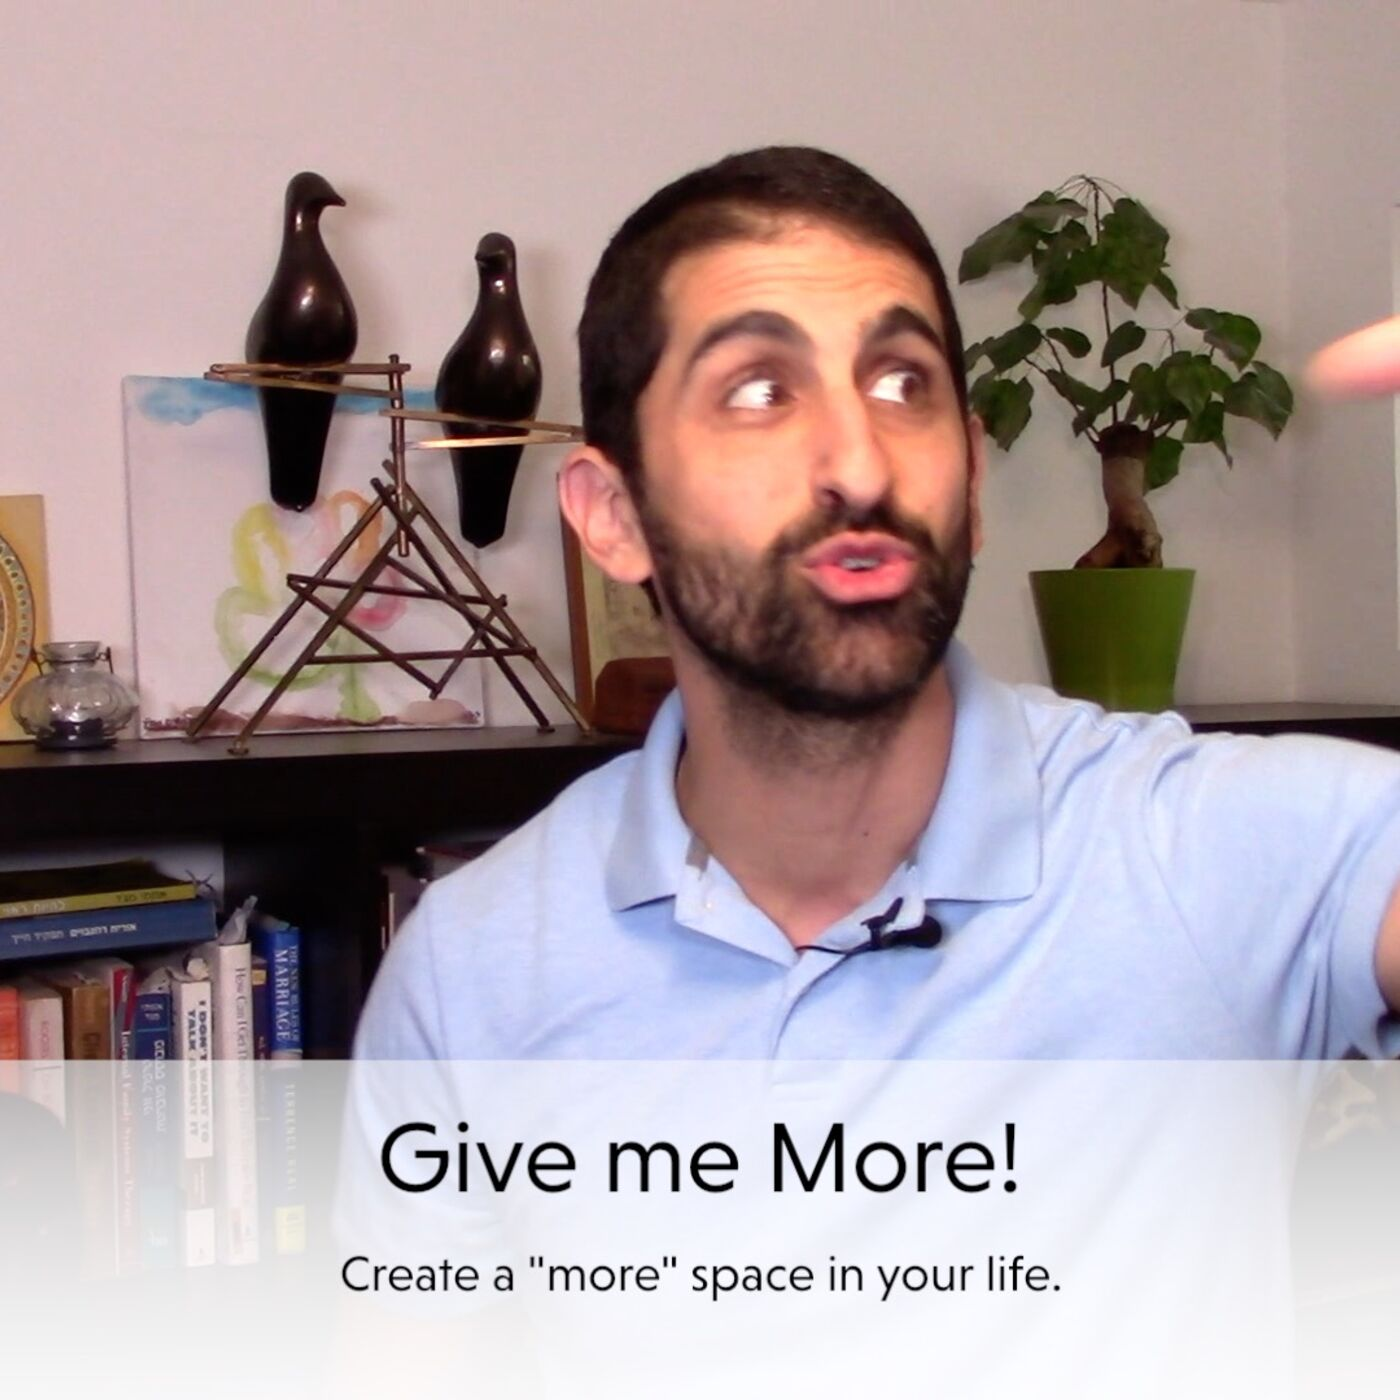 """Give me more!"" - Make a 'more' space in your life."